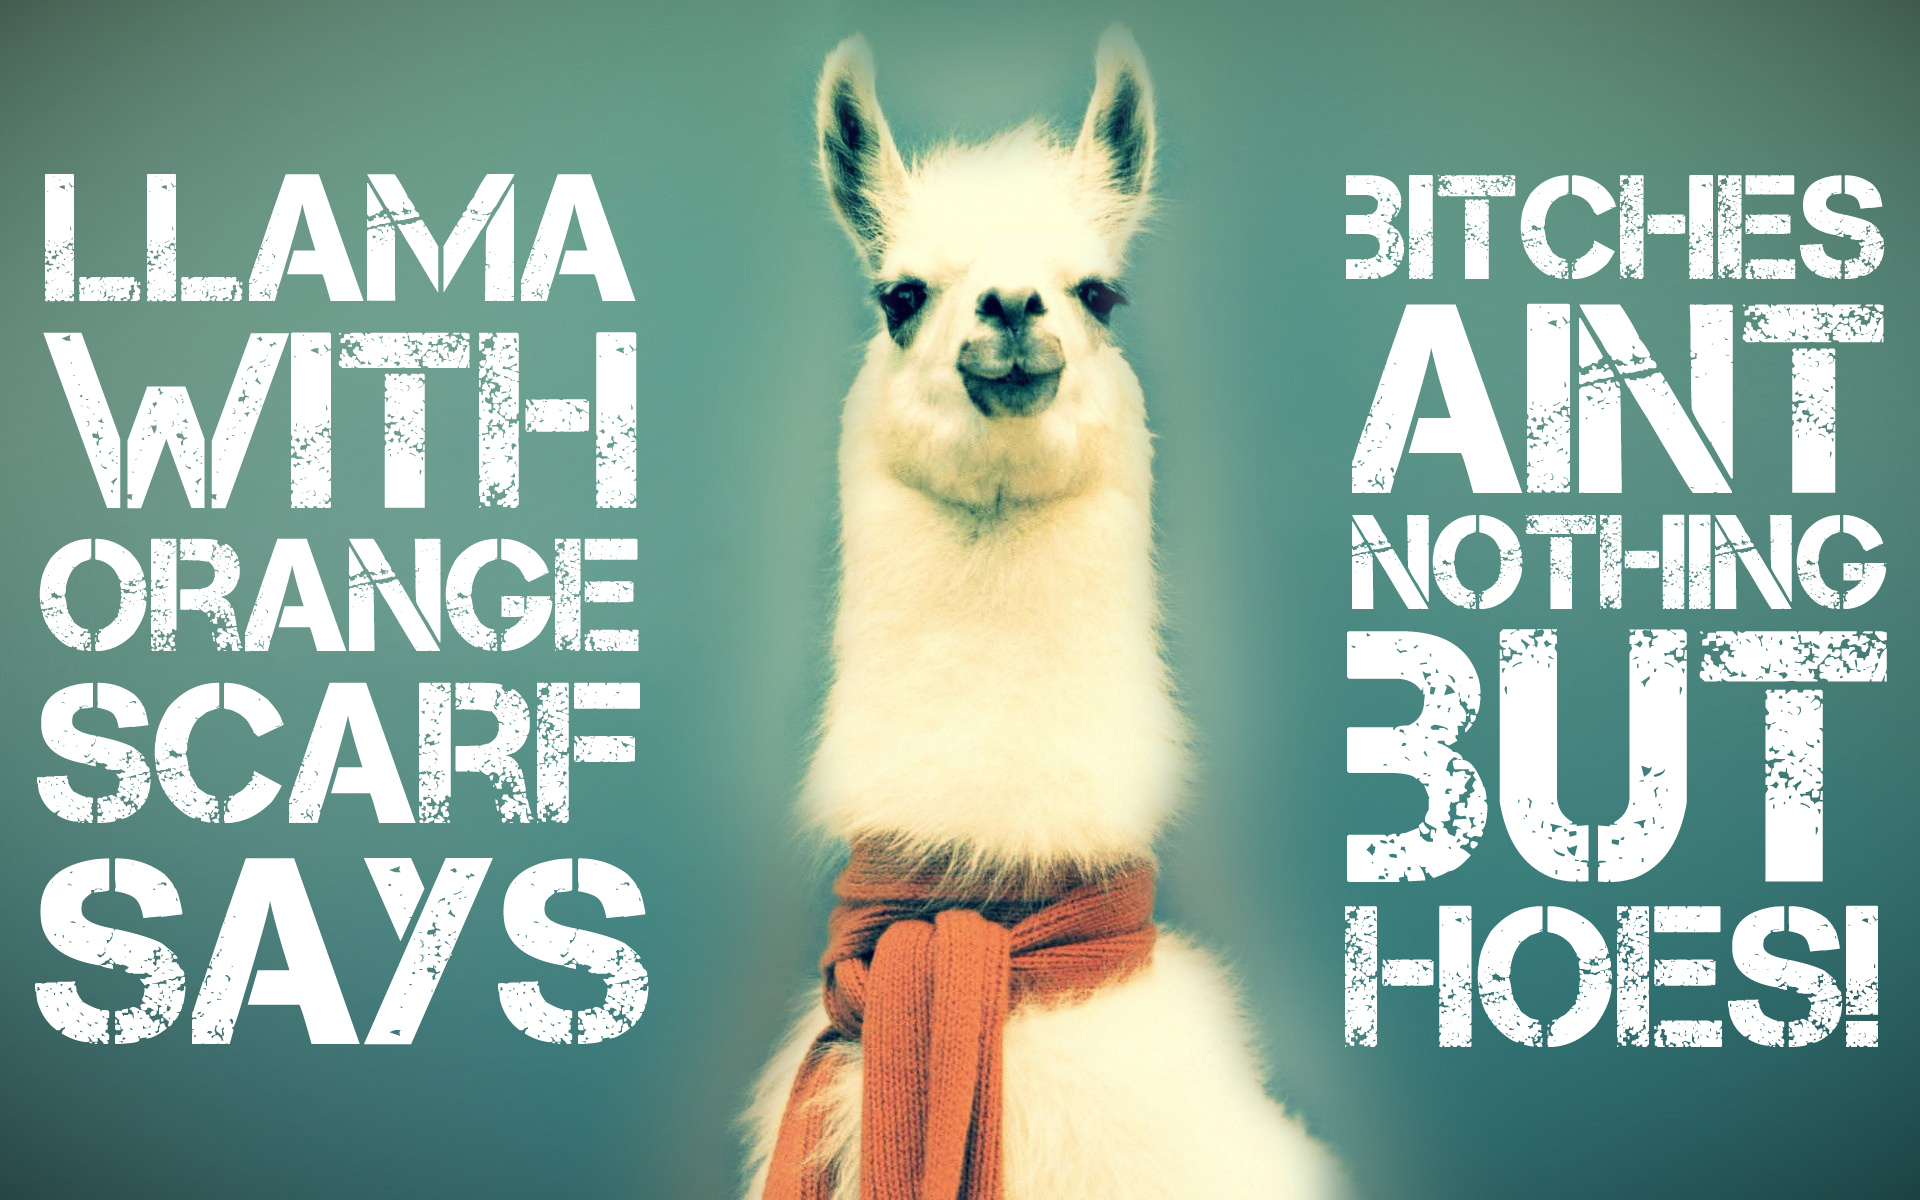 Animals funny llama HD Wallpaper